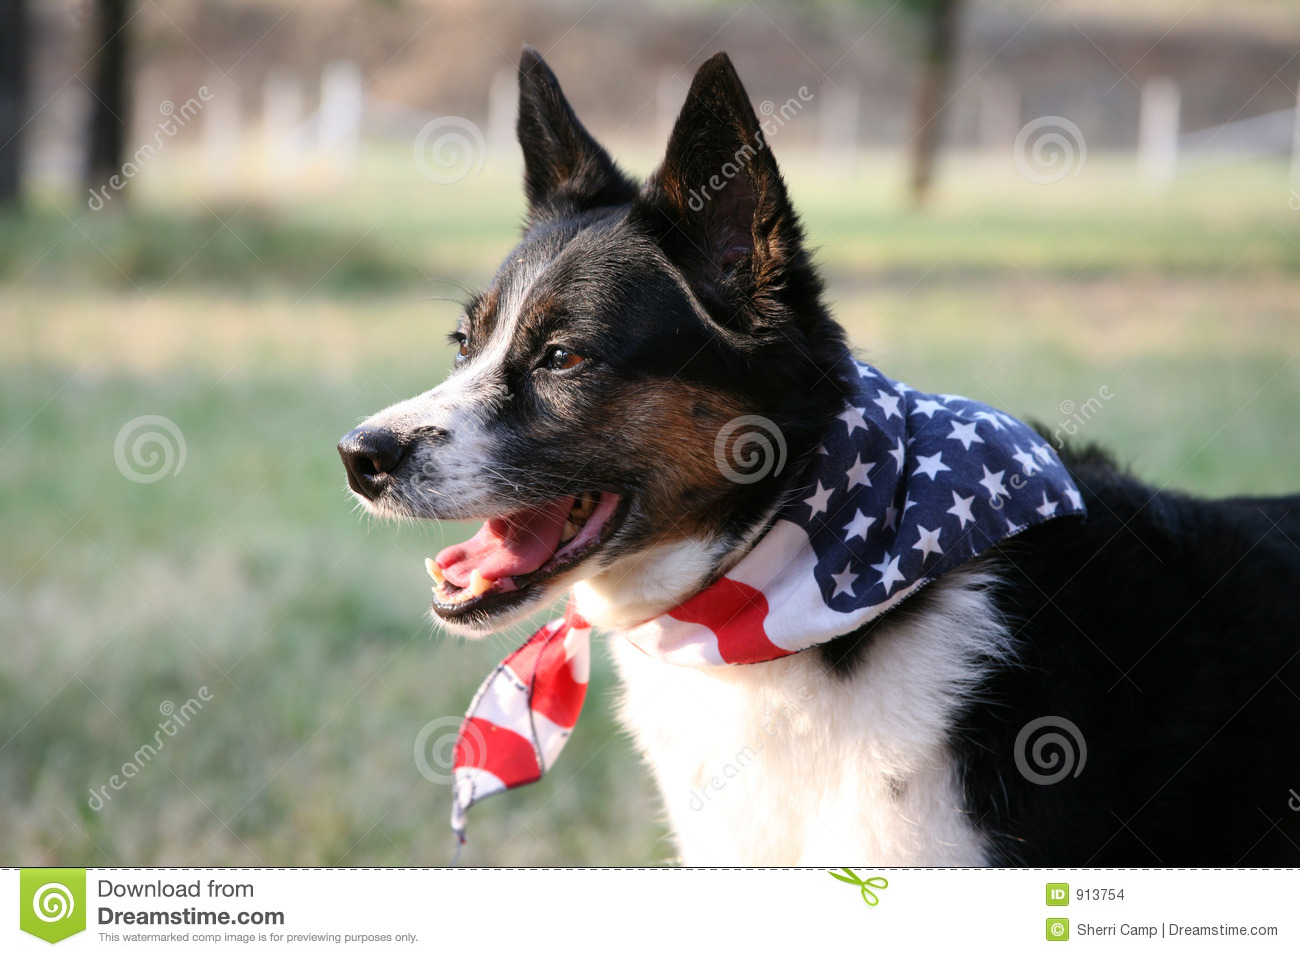 American Pride - Dog With Flag Stock Photo